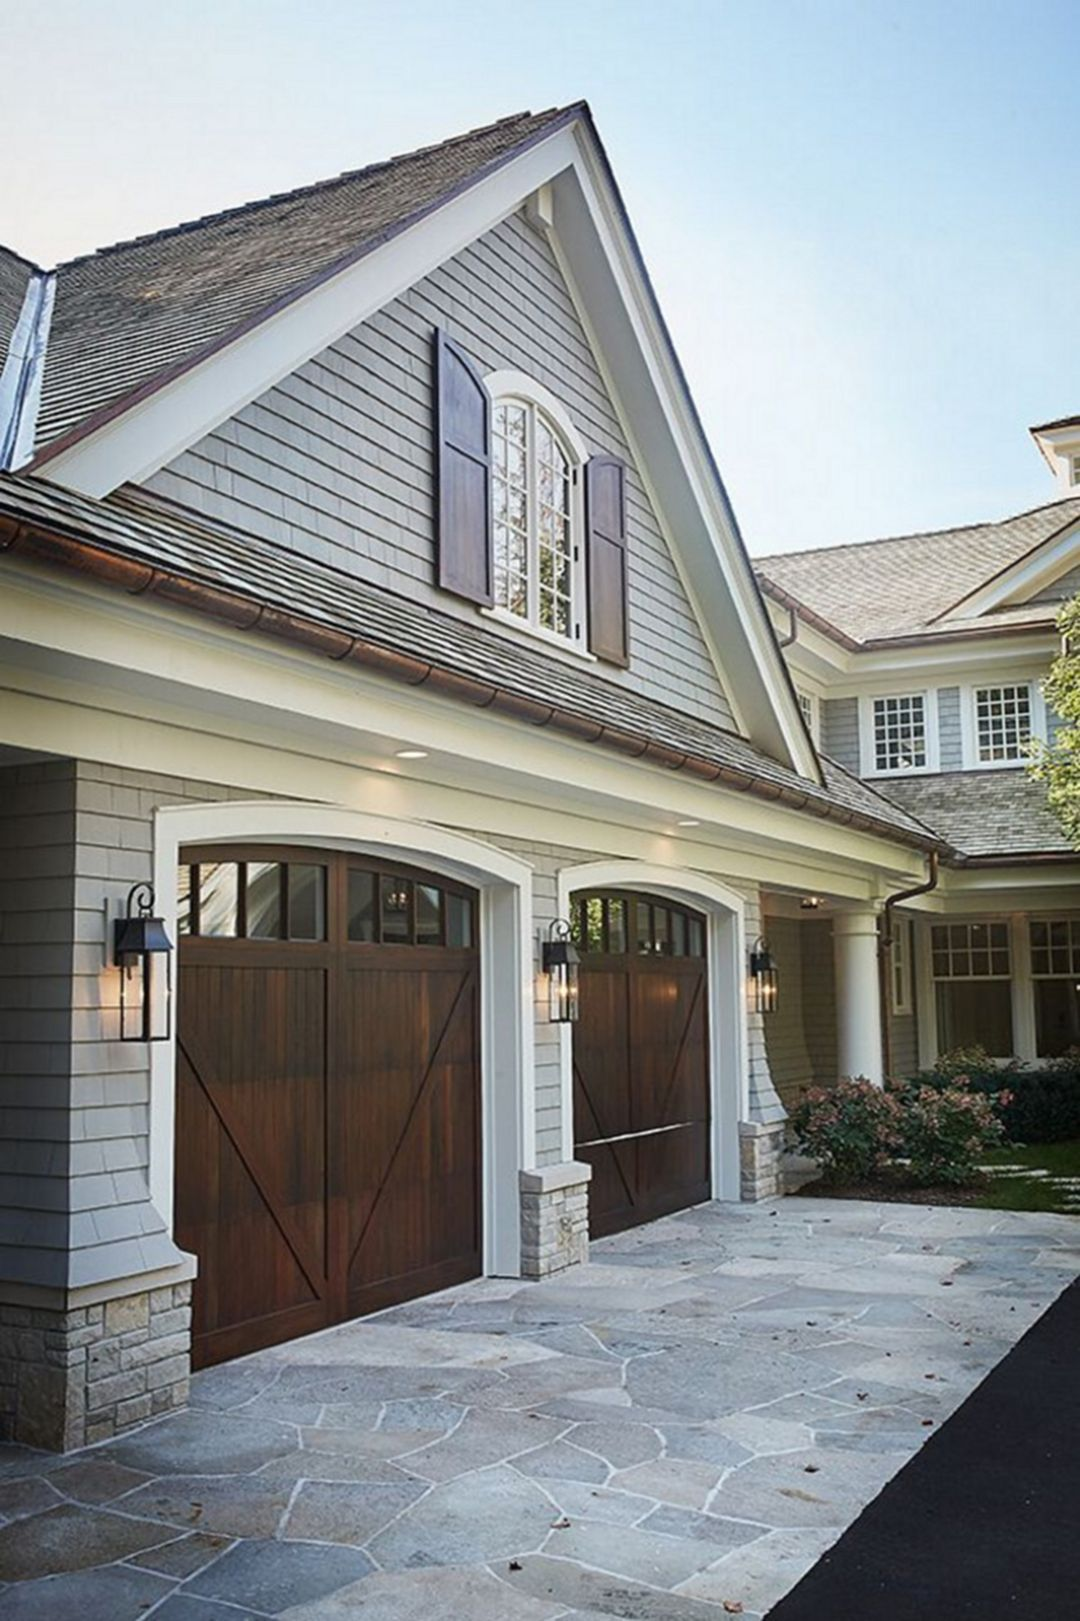 15 Most Unique Home Exterior with Stone Ideas For Amazing ... on Garage Door Color Ideas  id=36307